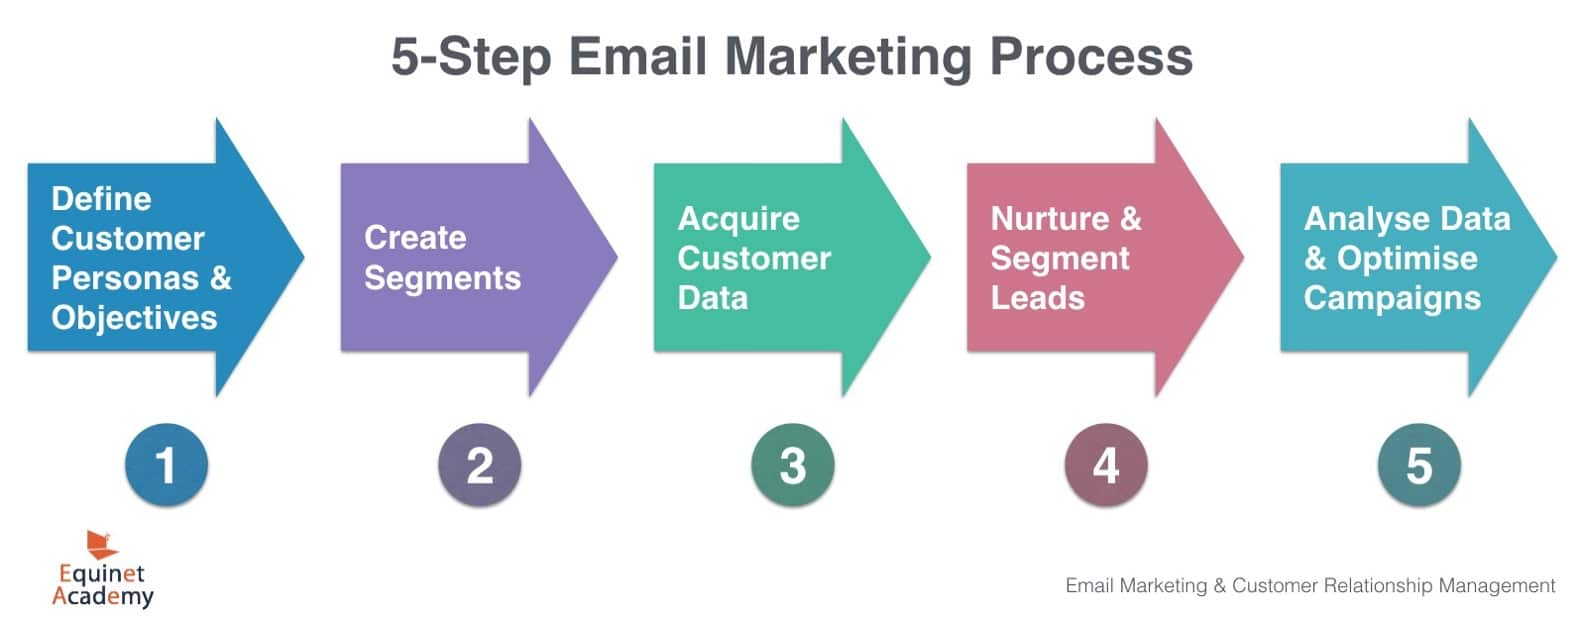 5-Step Email Marketing Process